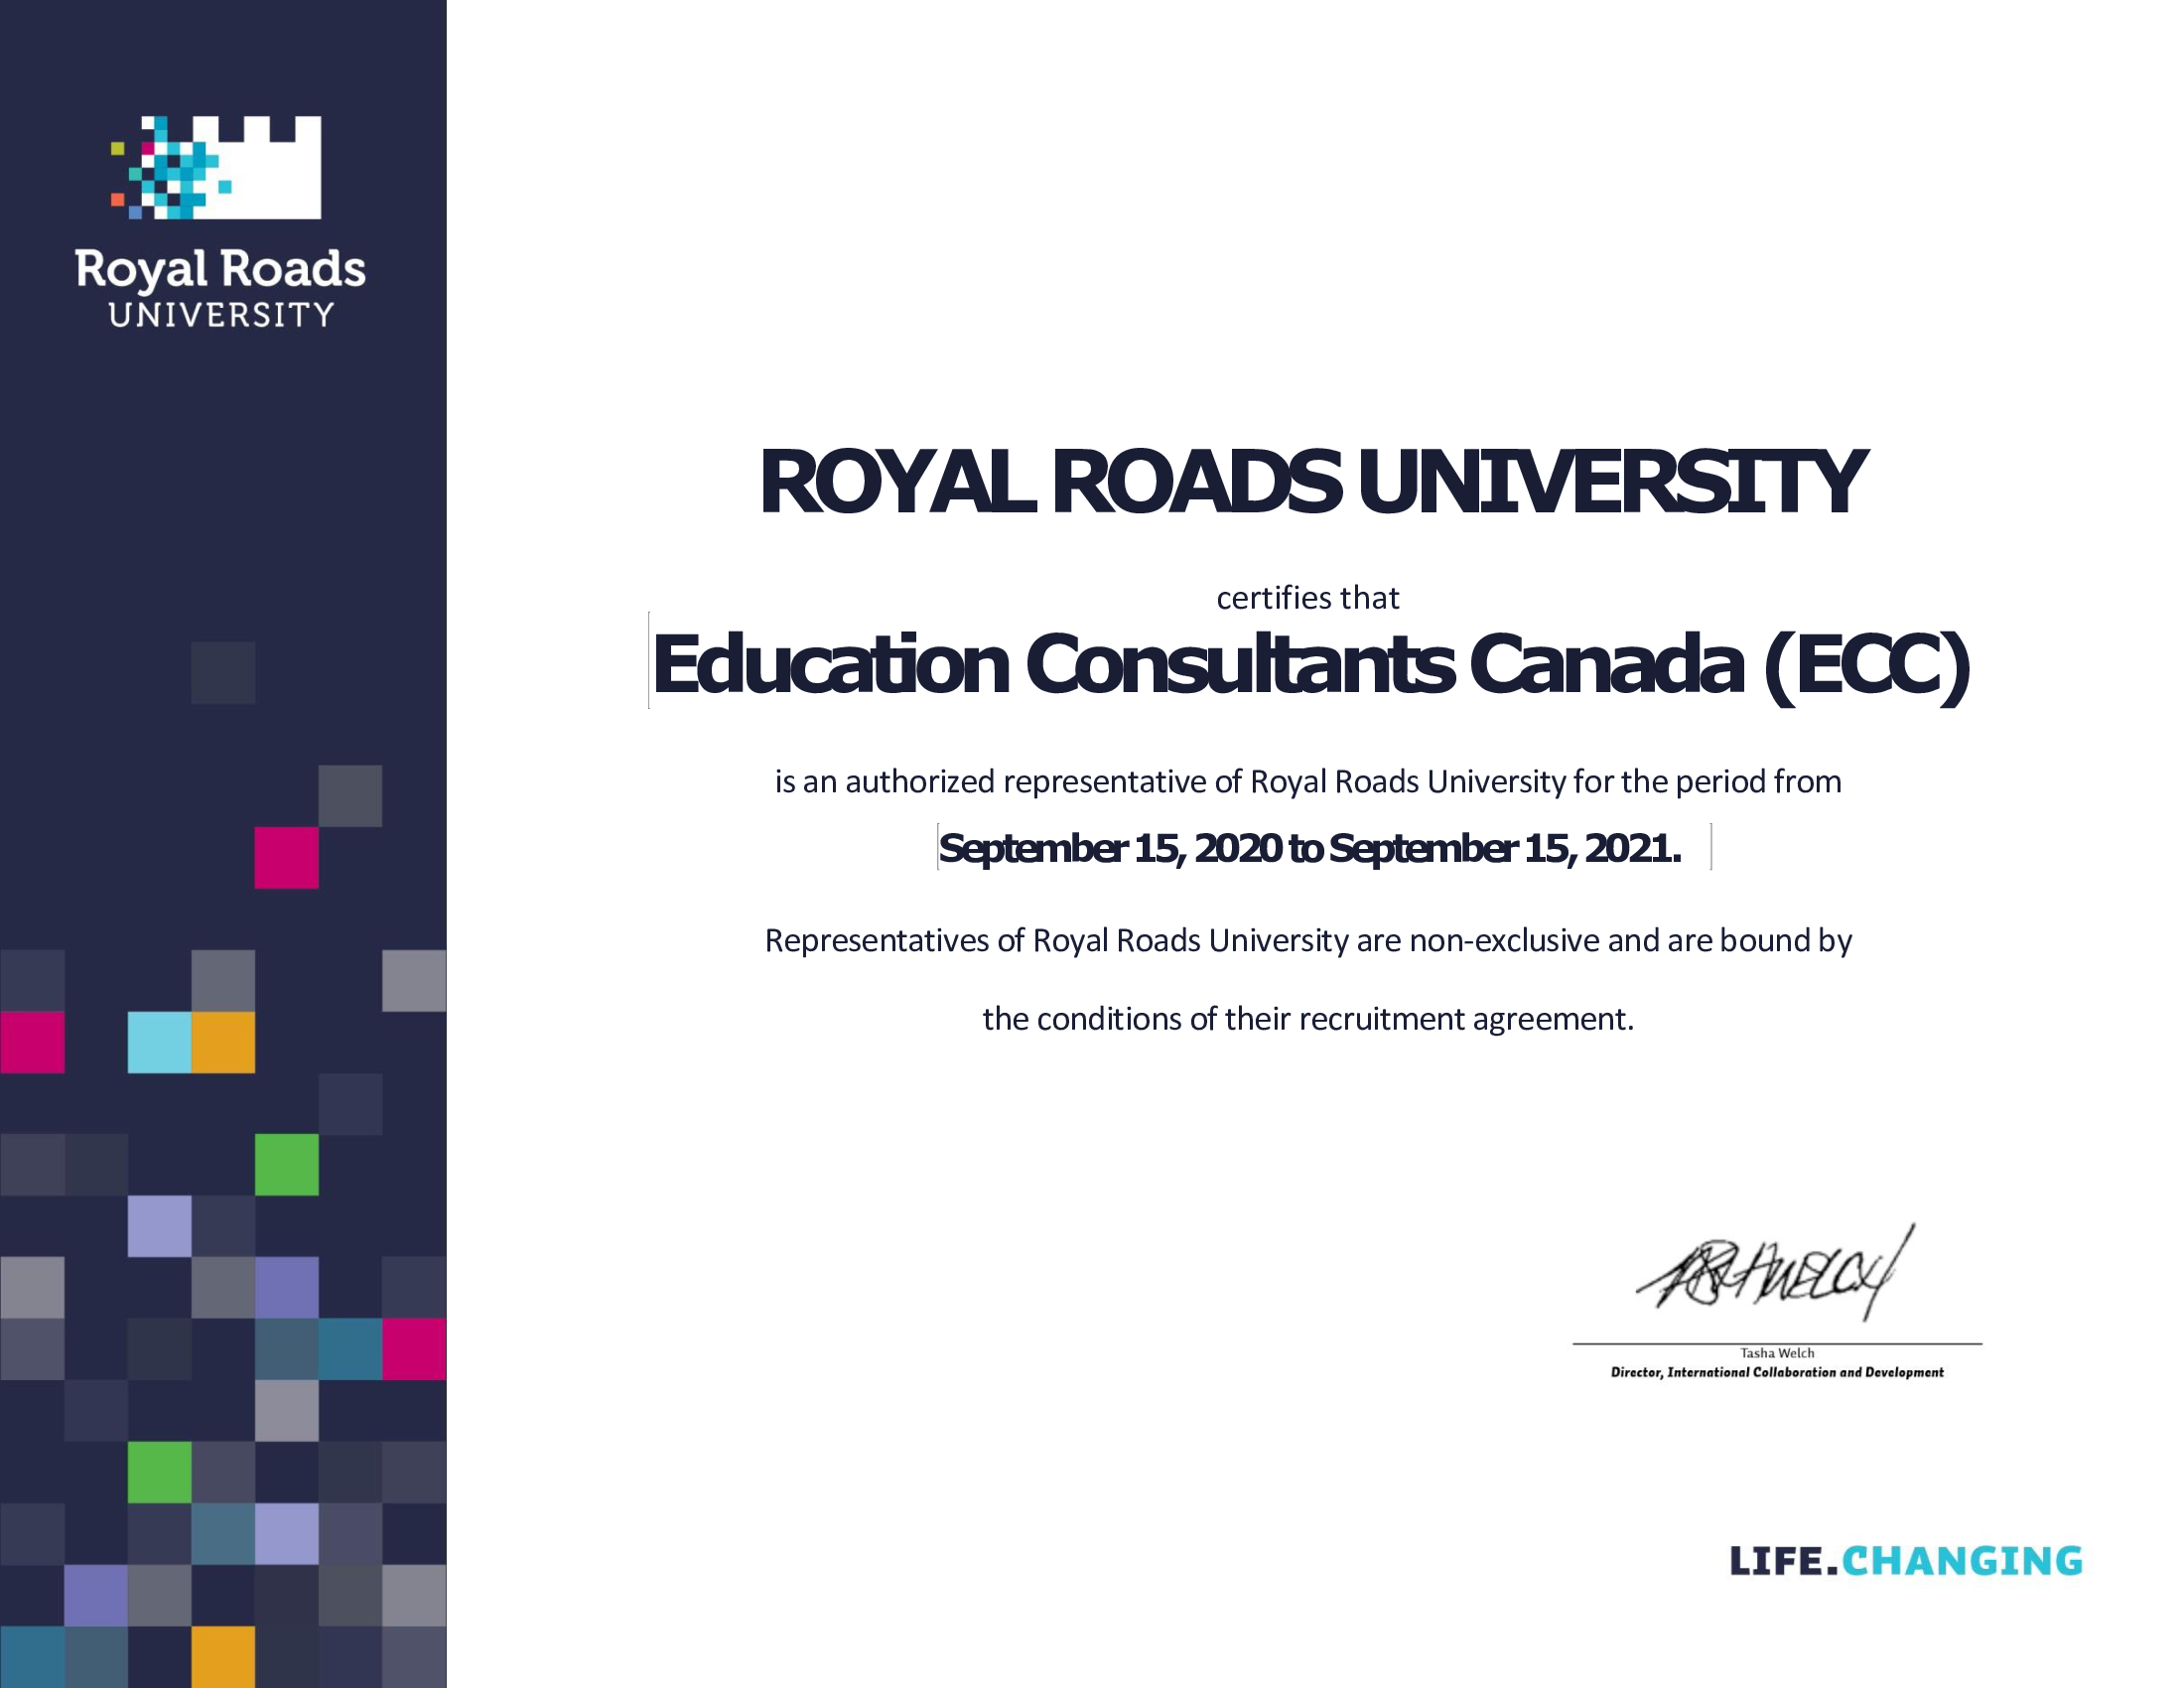 Education Consultants Canada is an Authorized Recruiter of Royal Roads University for International Students